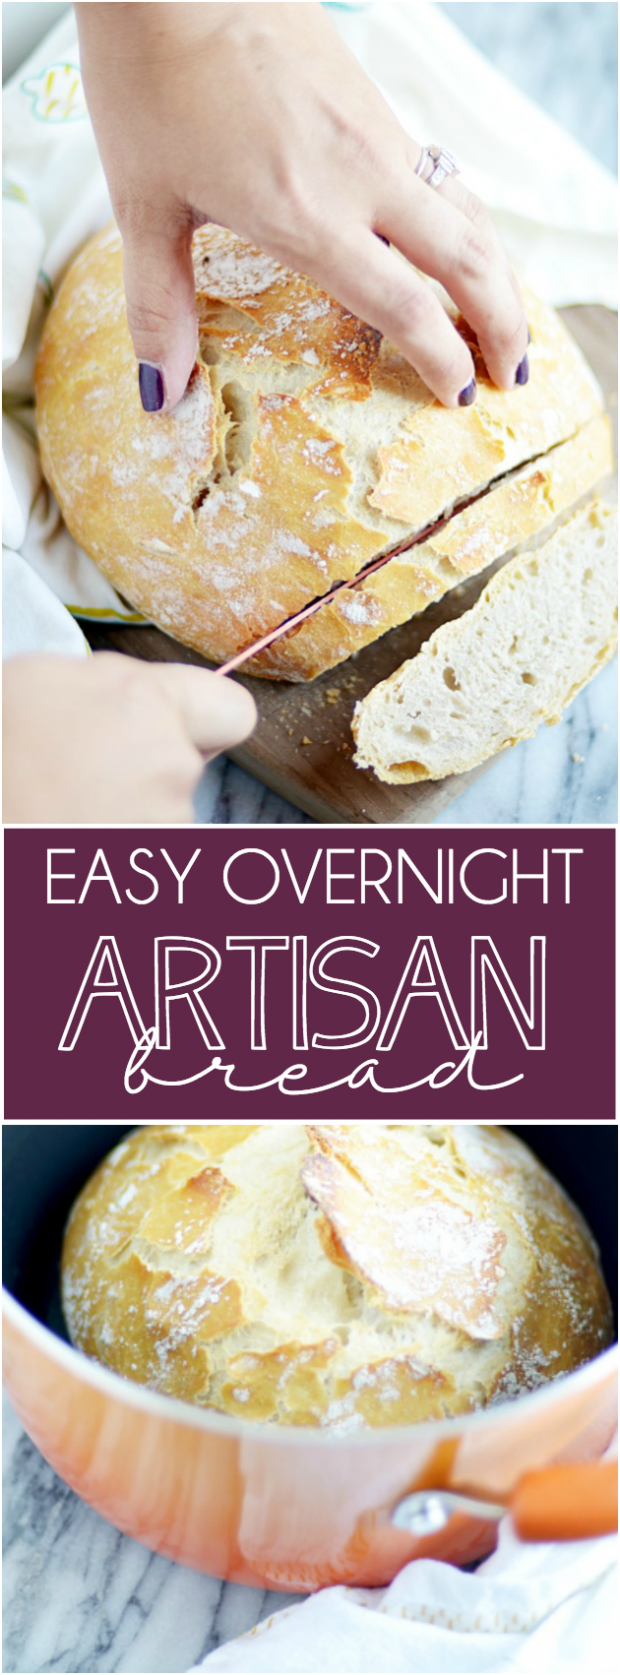 Ridiculously easy bread that is super crusty on the outside and steamy soft on the inside. You won't believe how fool-proof this recipe is!